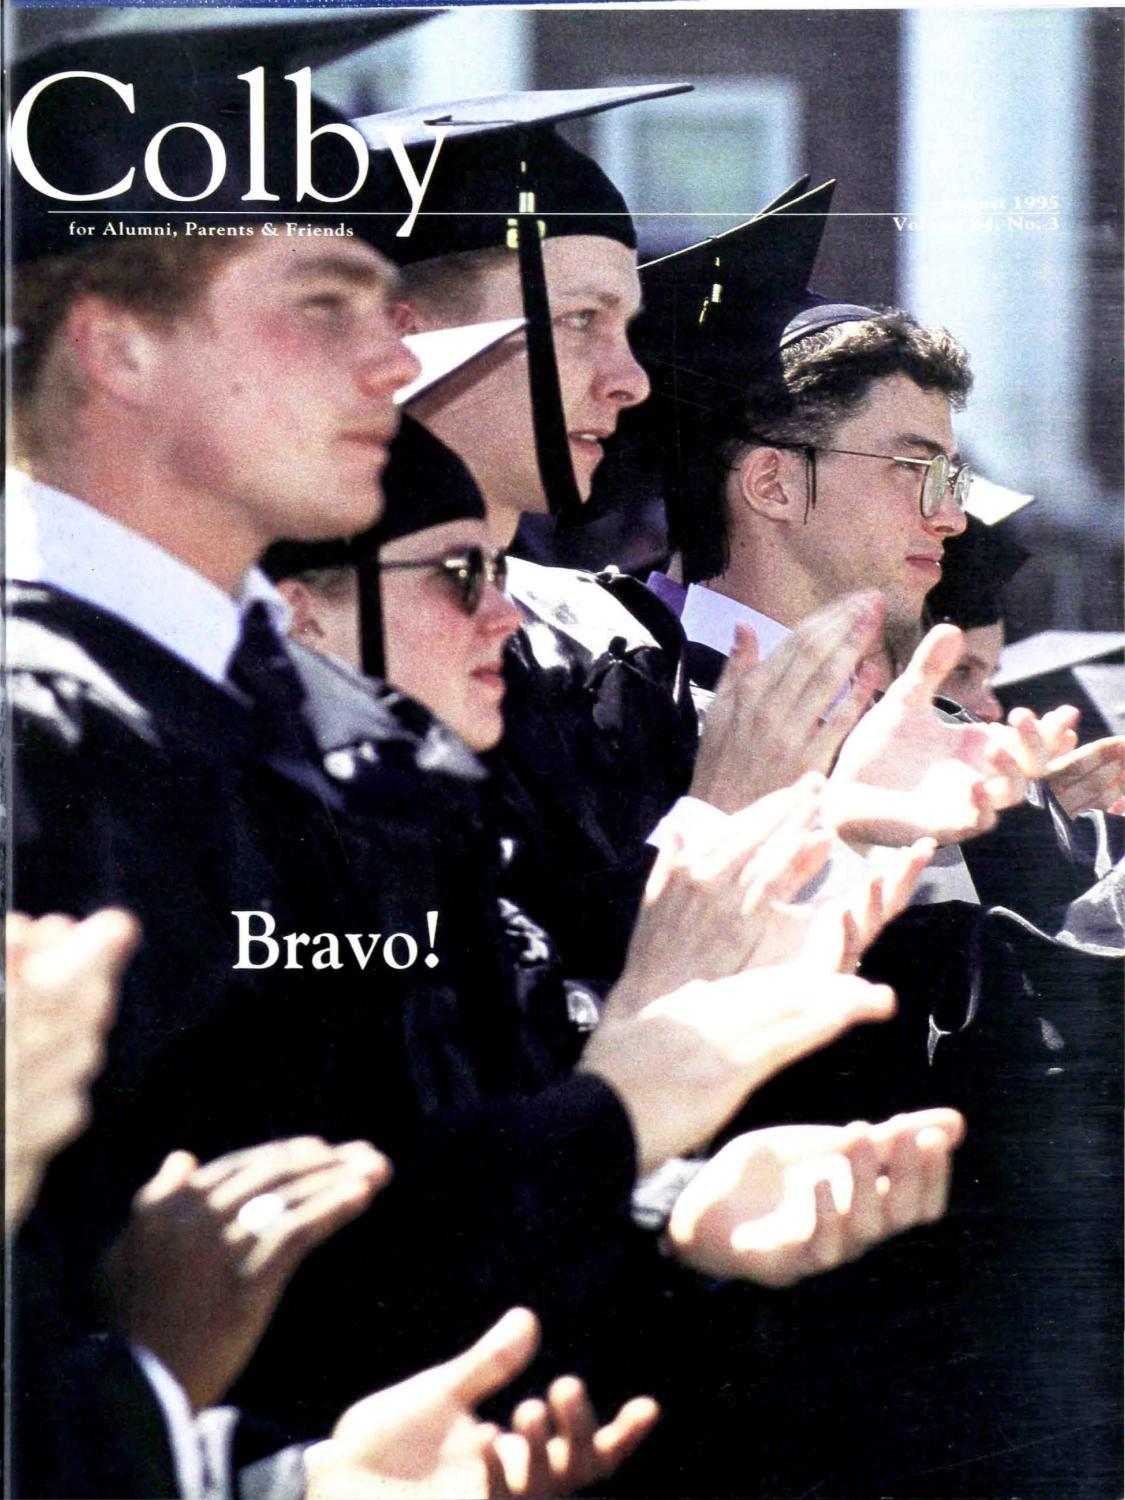 Colby magazine vol. 81, no. 2 by colby college libraries   issuu